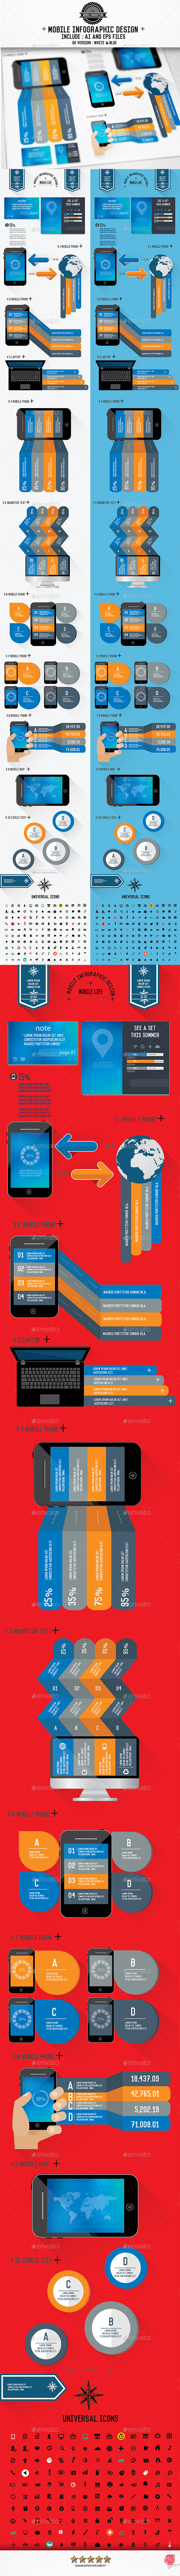 Mobile Phone Infographics Design[Update] - Infographics